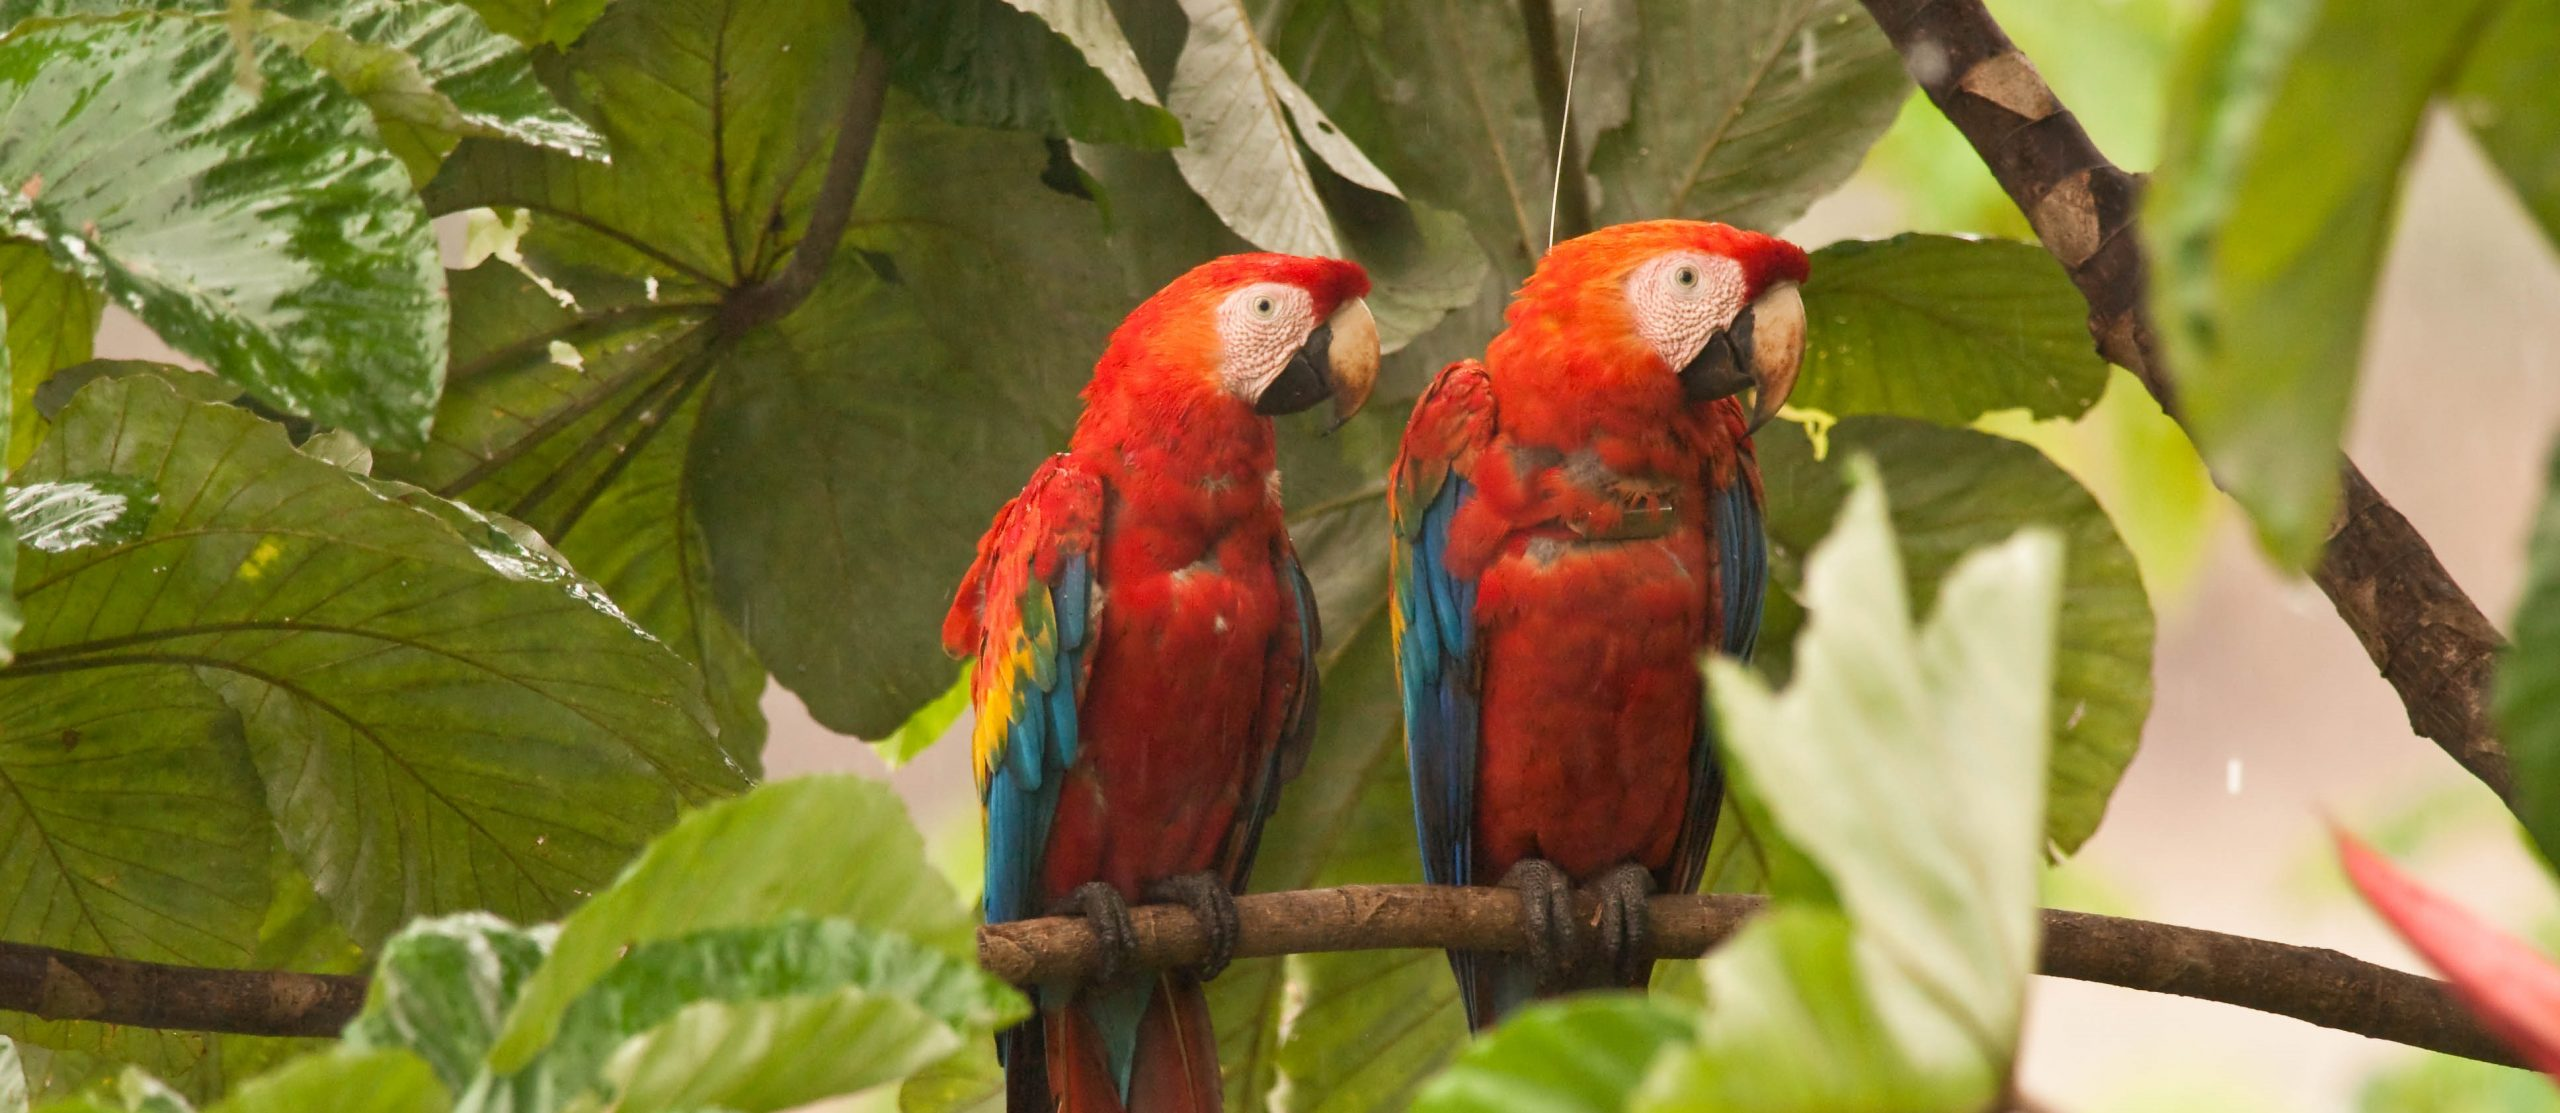 Two scarlet macaws